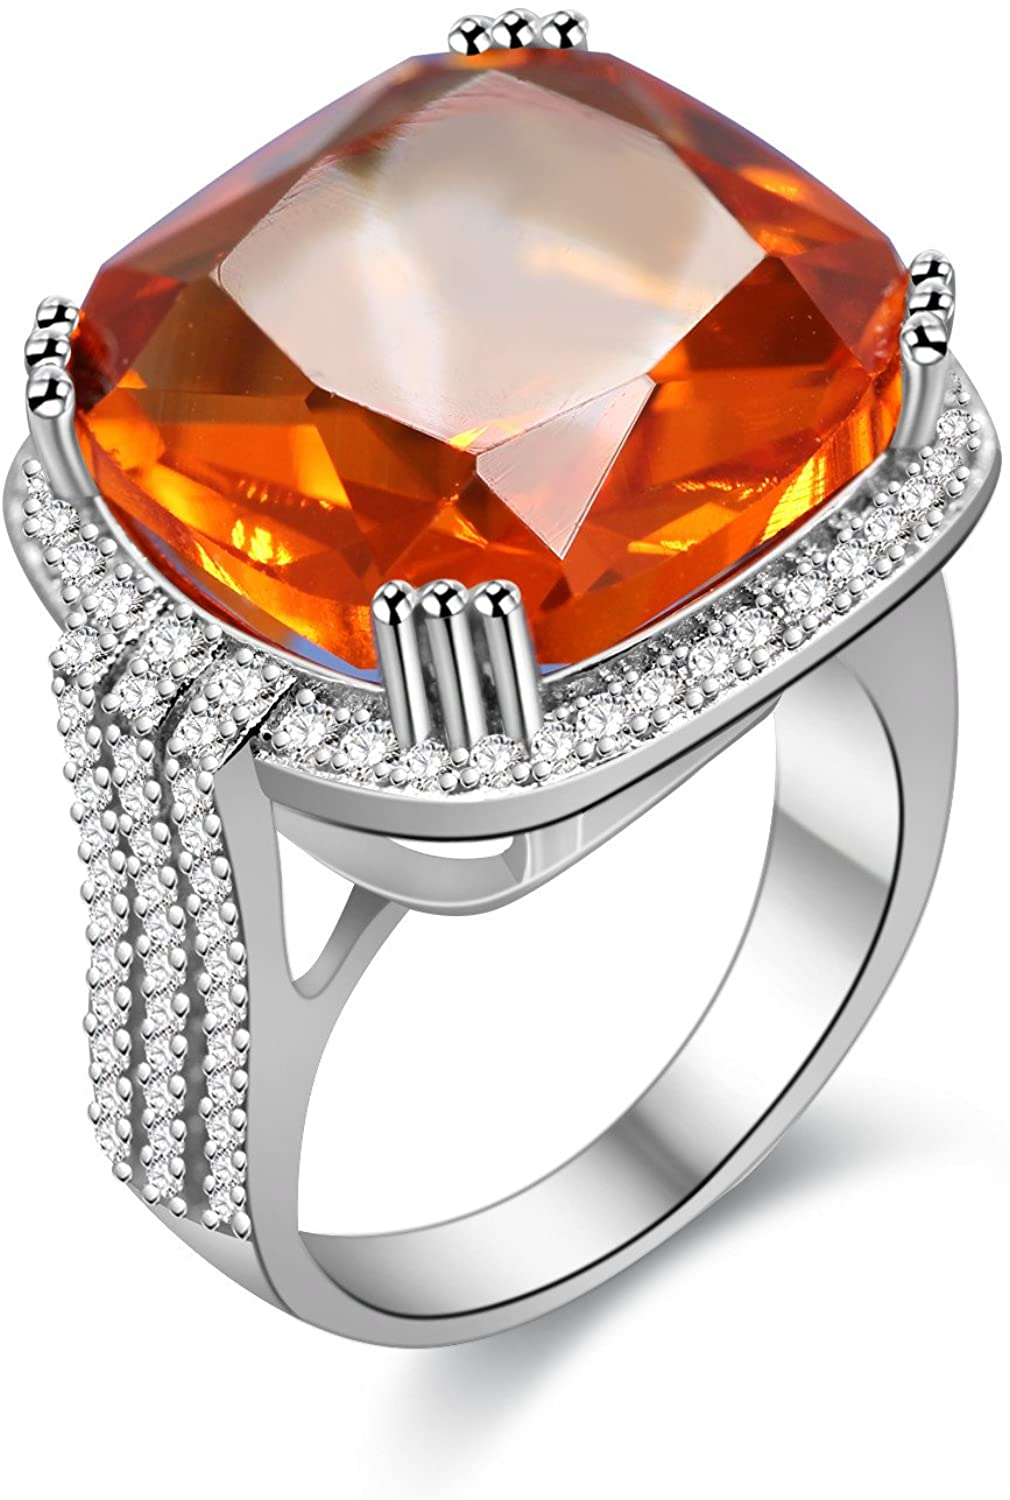 Uloveido Platinum Plated Big Princess Square Orange Stone Cocktail Ring for Women and Men with Cubic Zirconia Size 6 7 8 9 10 RA219